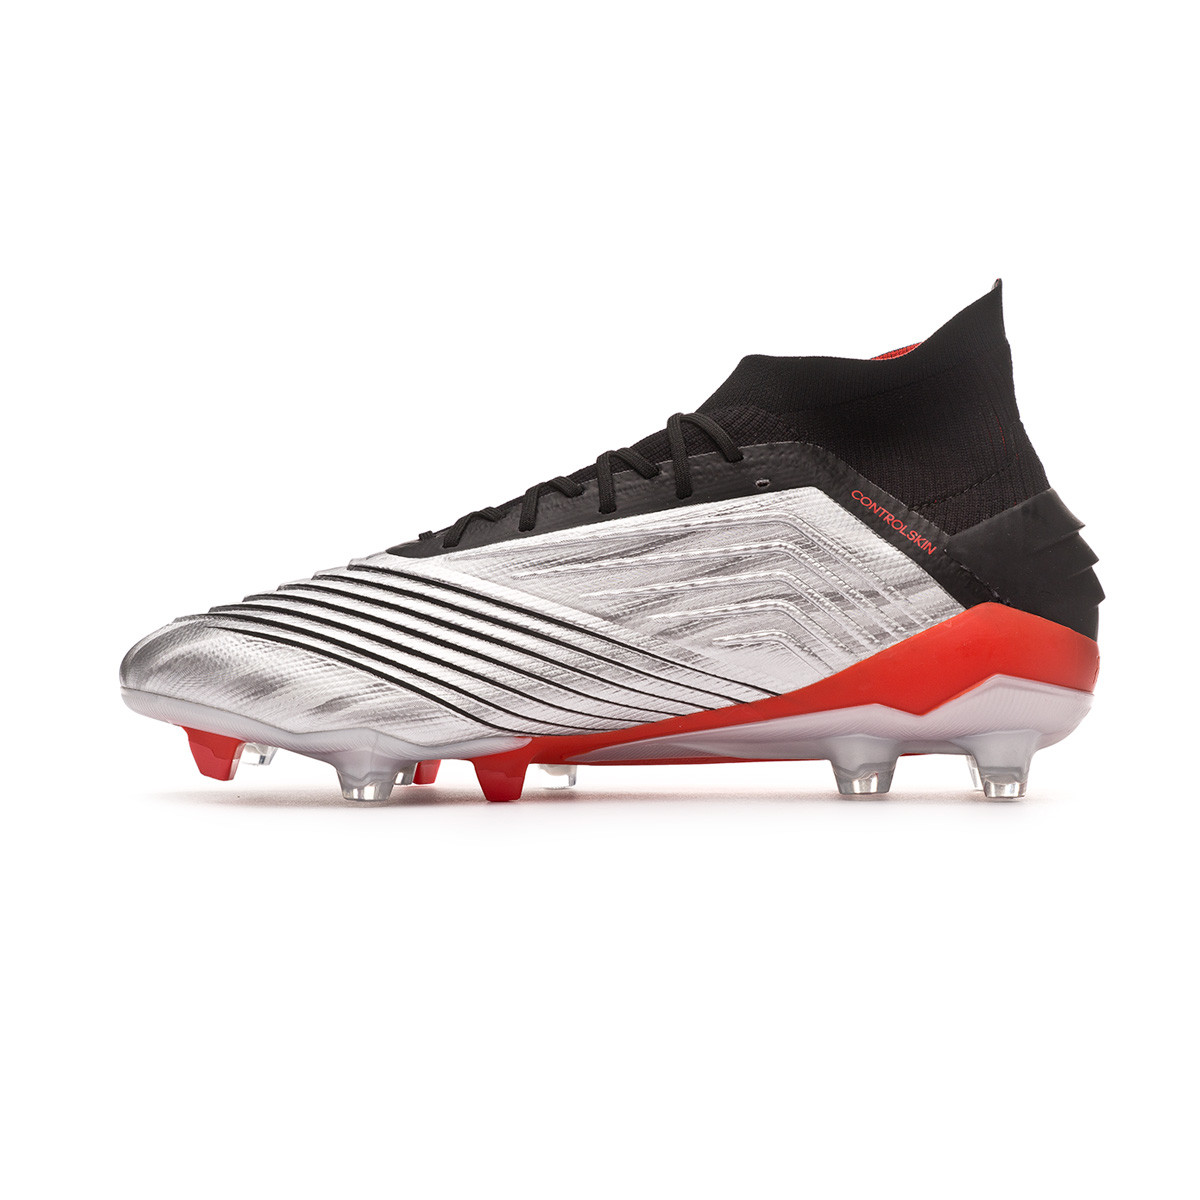 4da2f5172 Football Boots adidas Predator 19.1 FG Silver metallic-Core black-Hi red -  Football store Fútbol Emotion